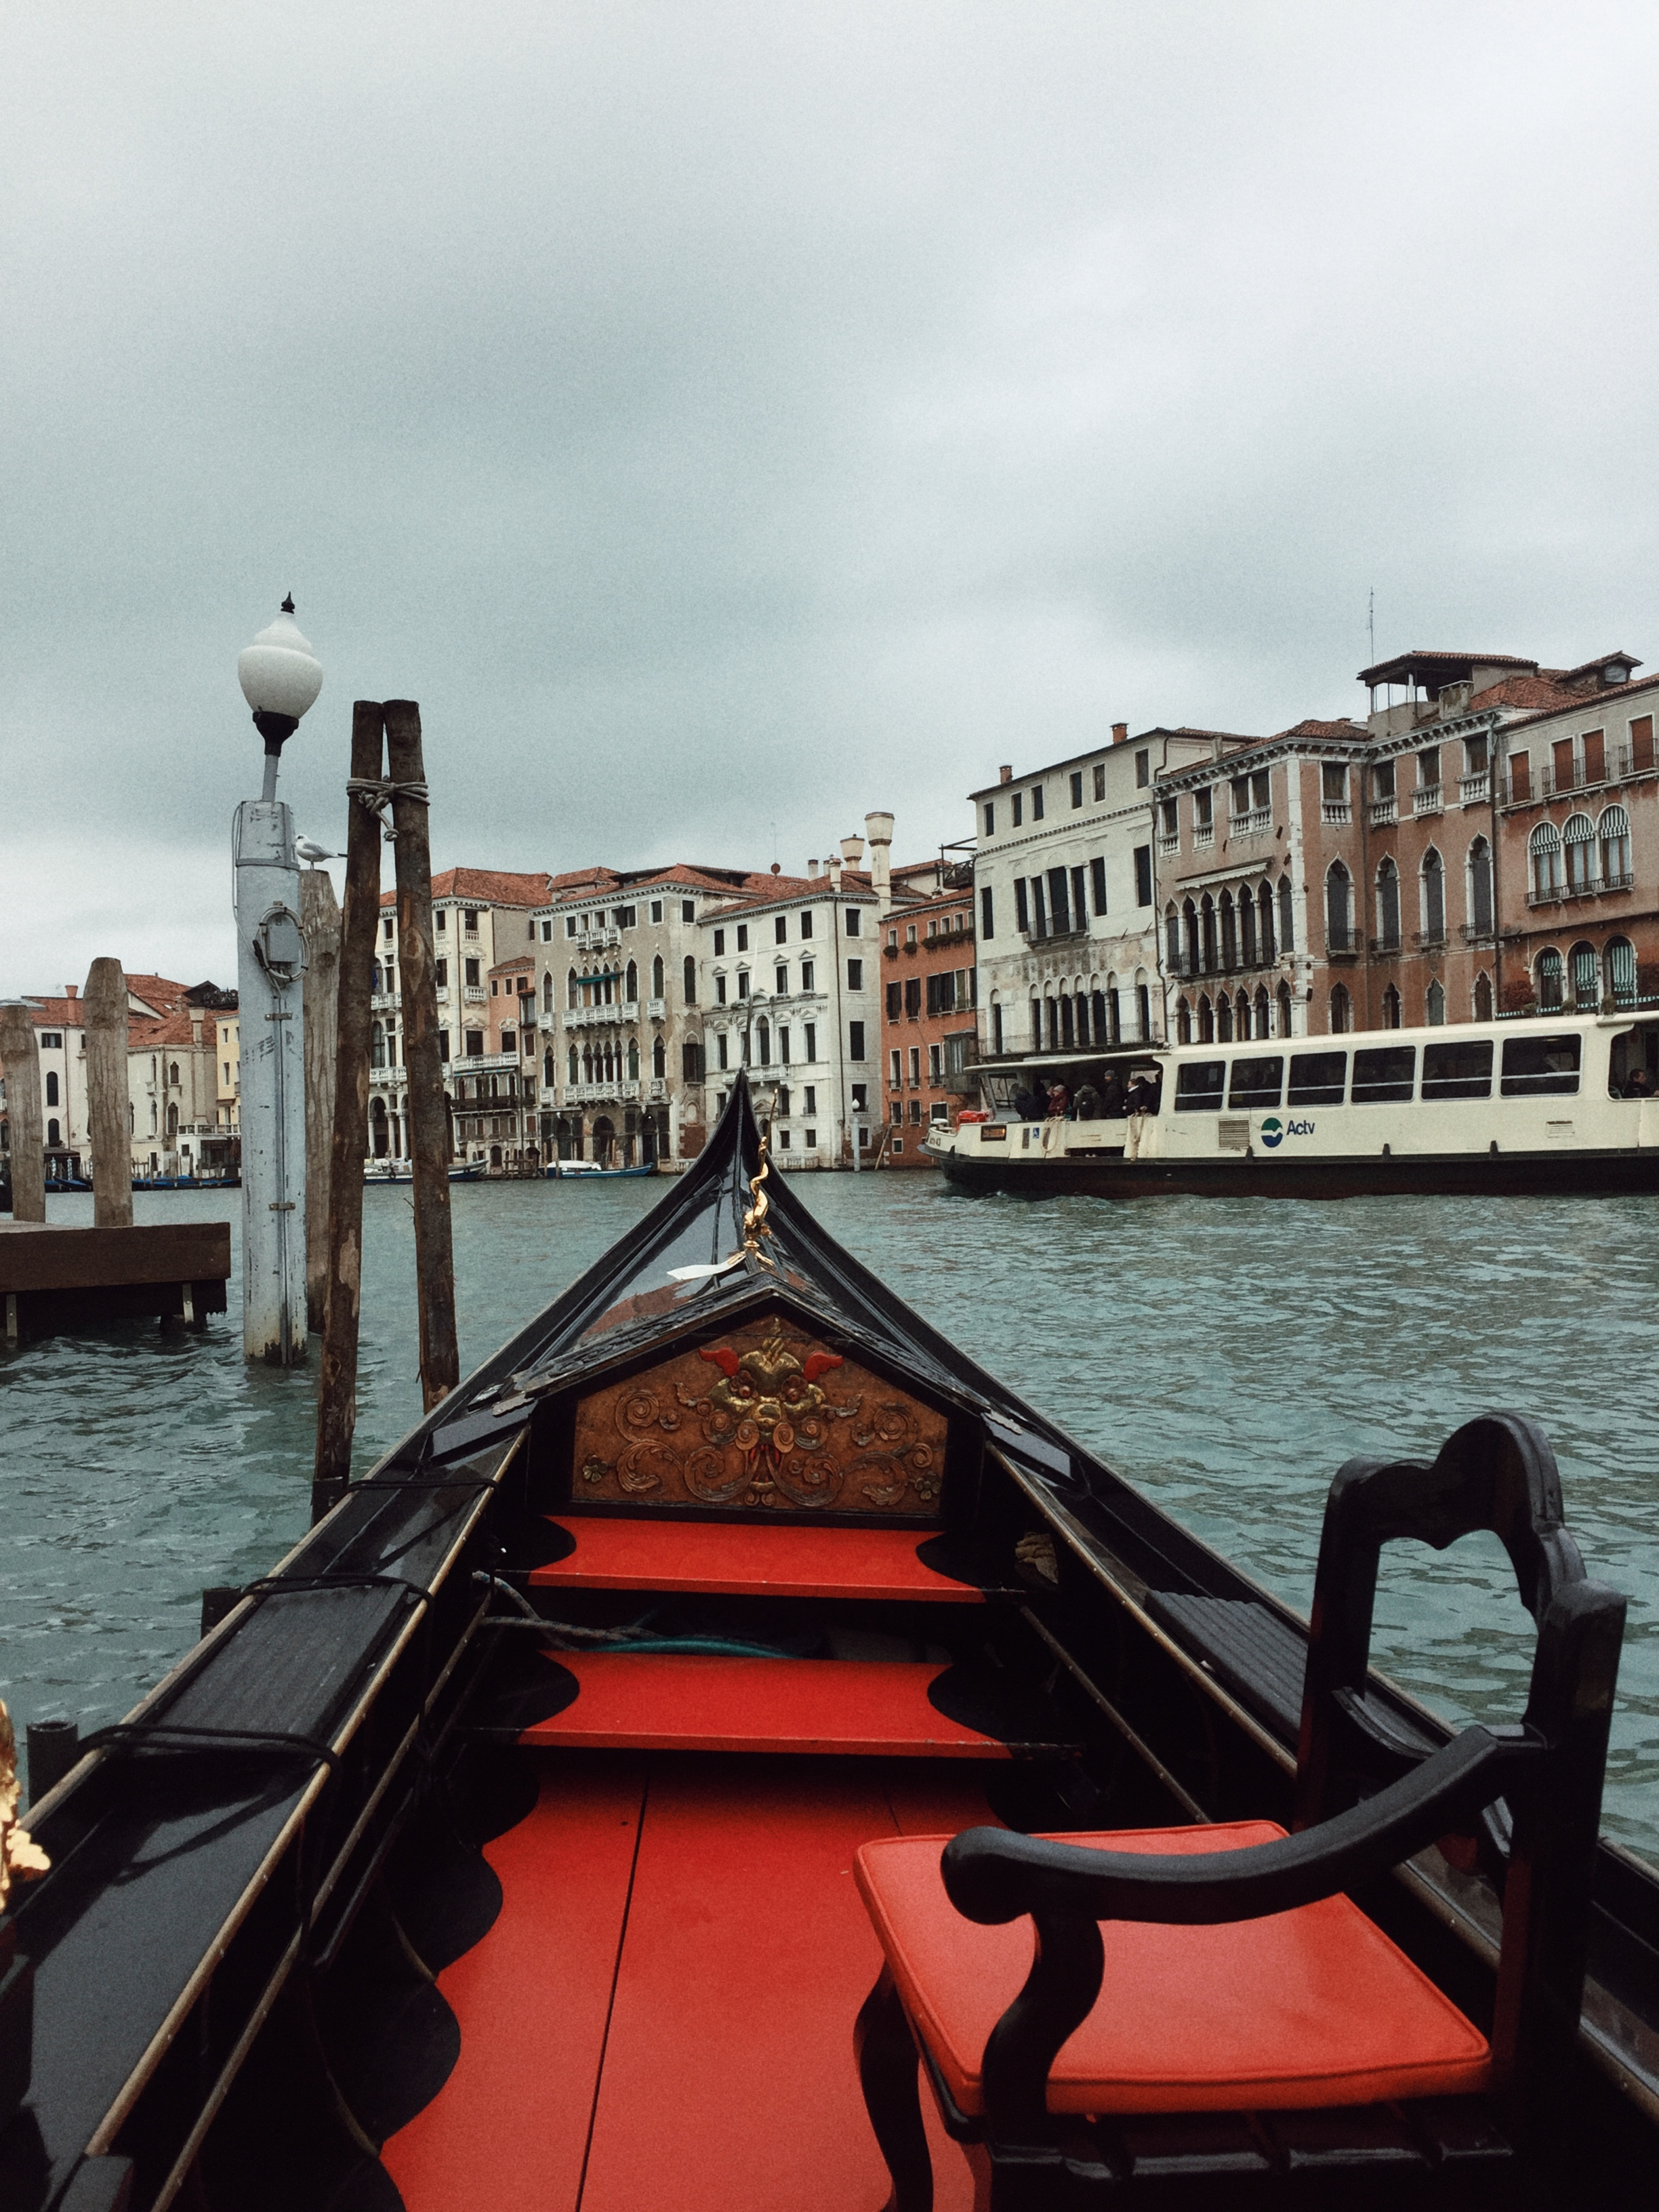 Venice, Gondola ride in Venice, Huesofme blog